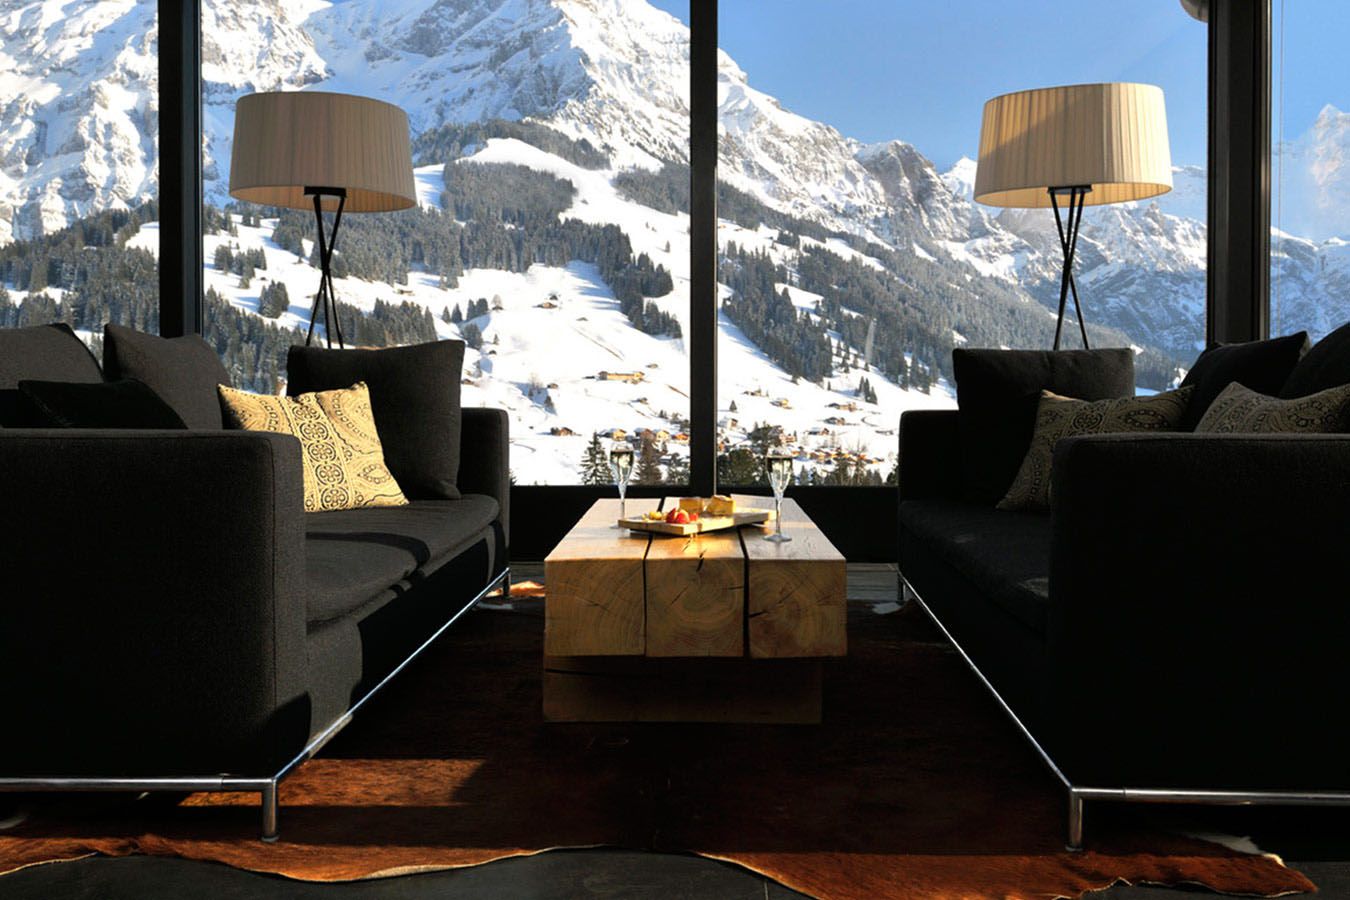 Contemporary Ski Resort Swiss Alps